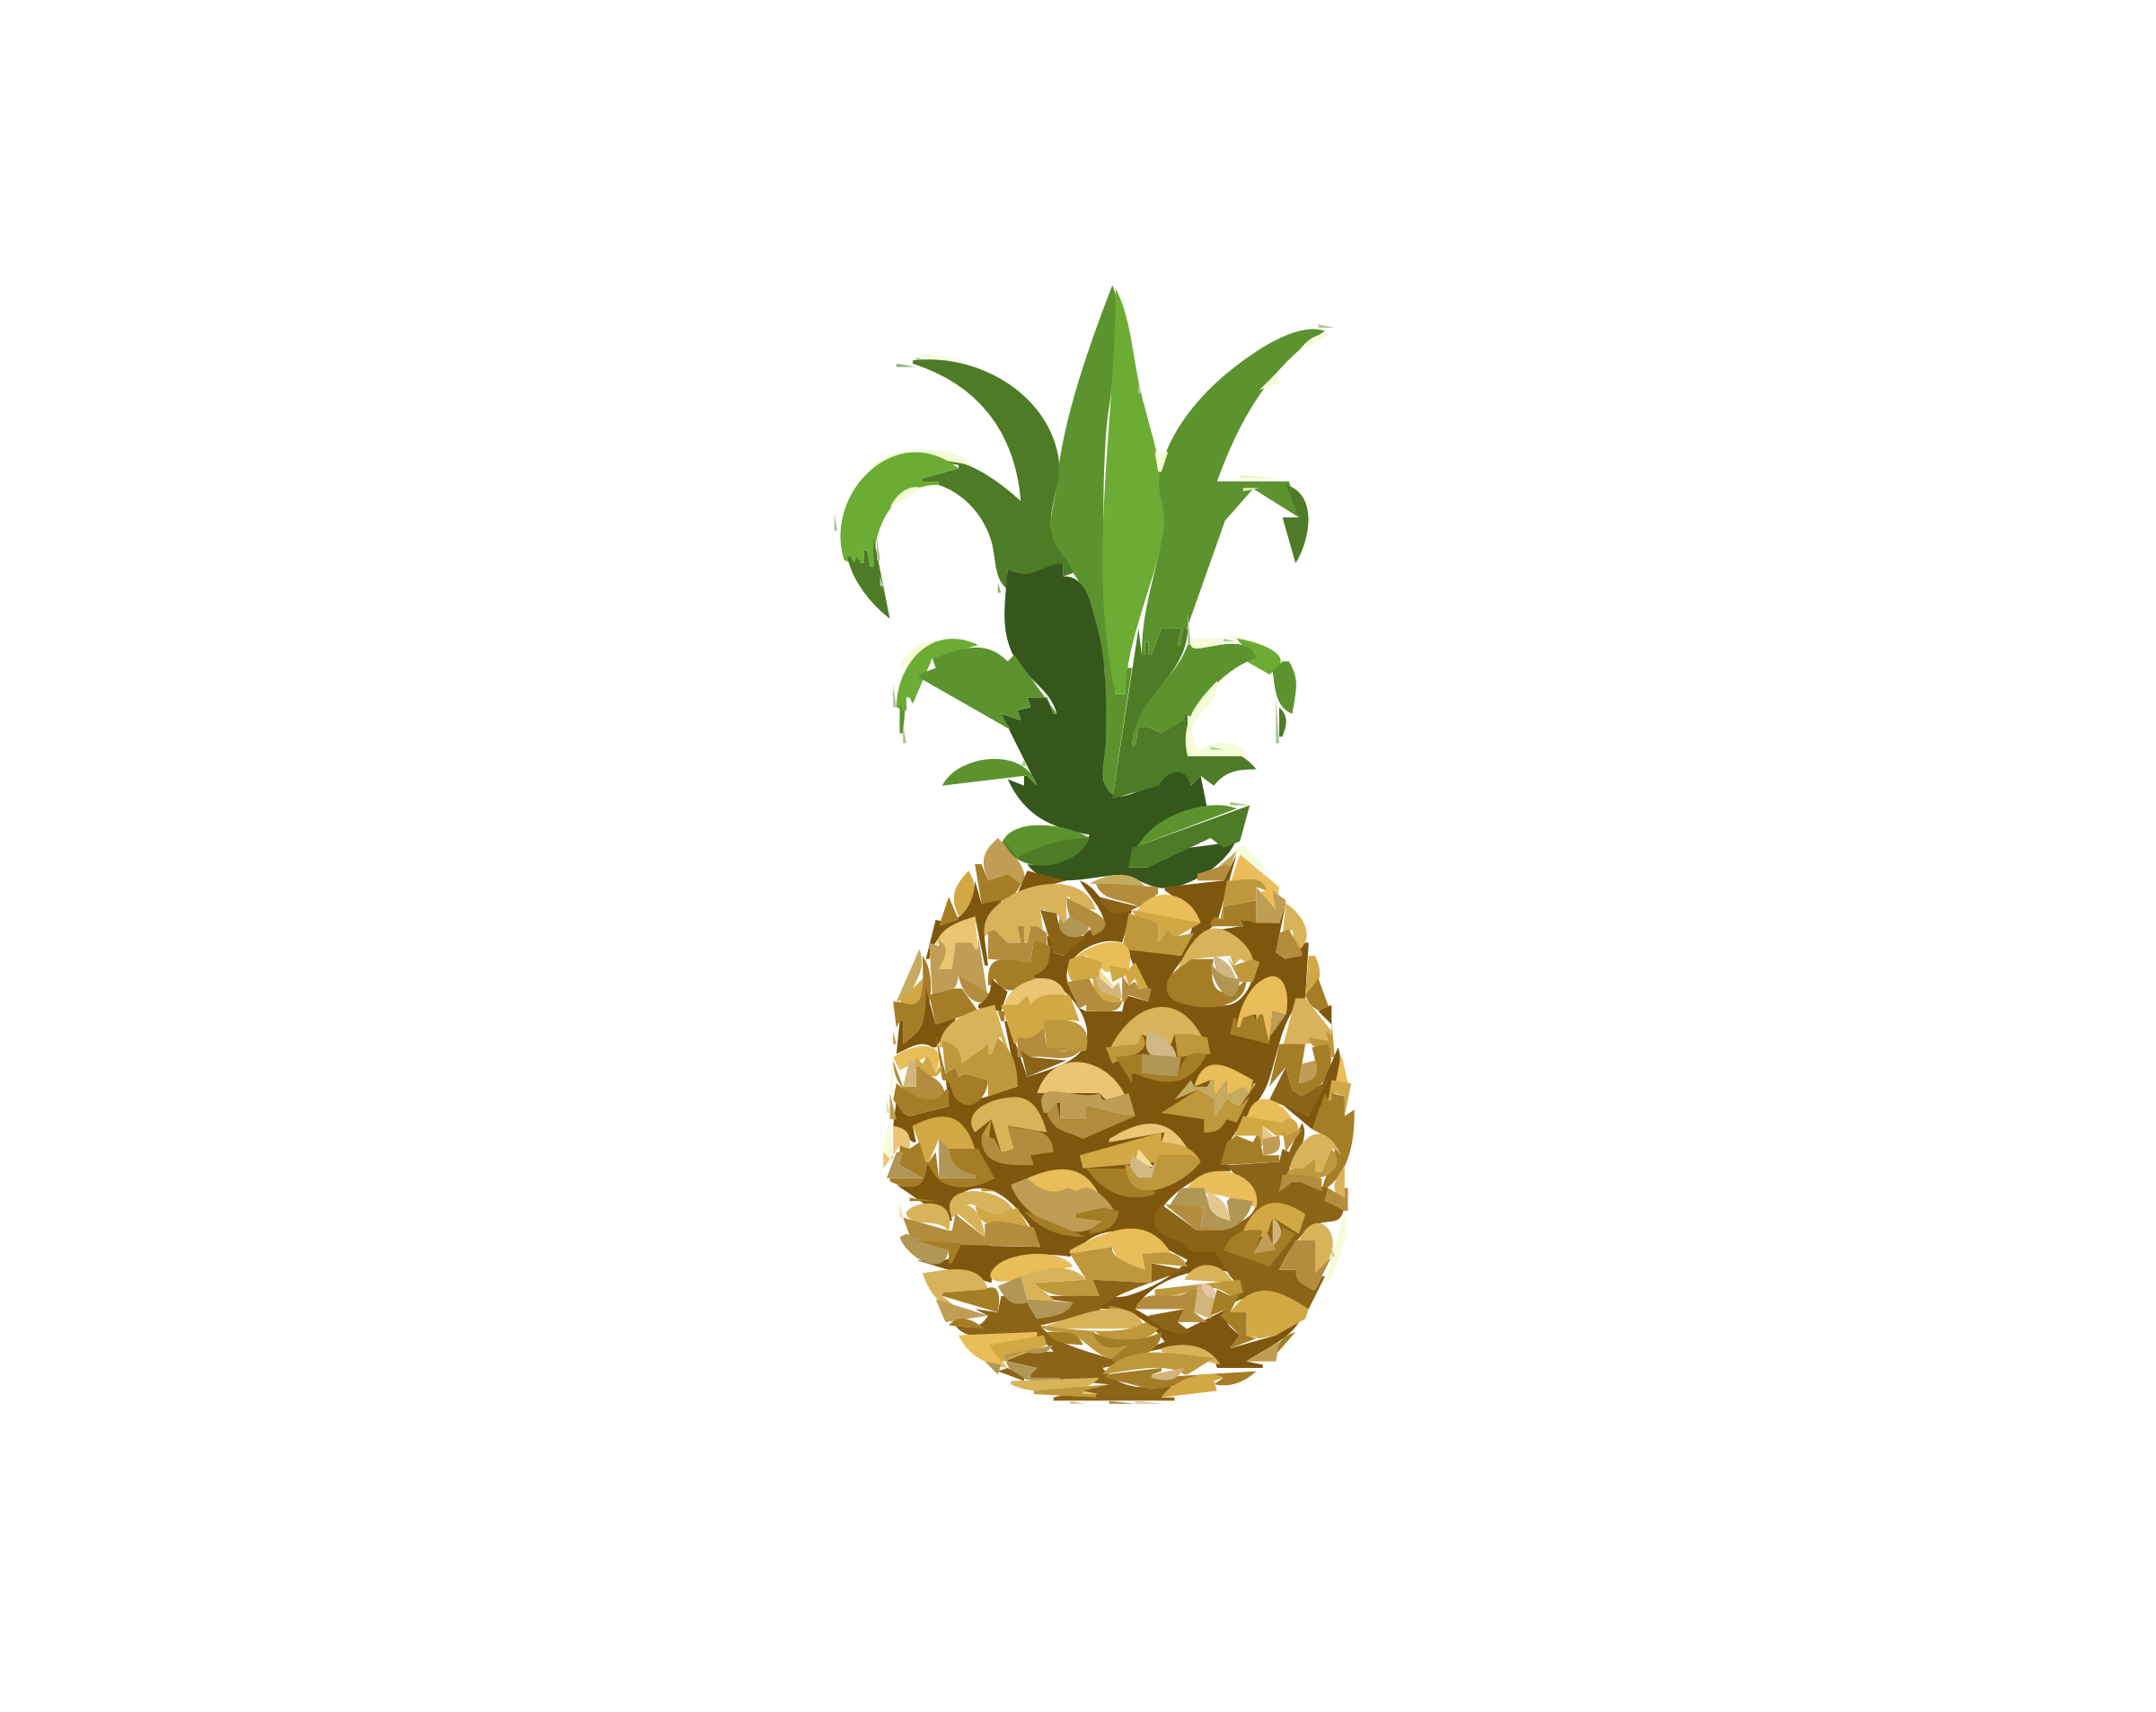 Food pineapple remix by Jeleniowaty